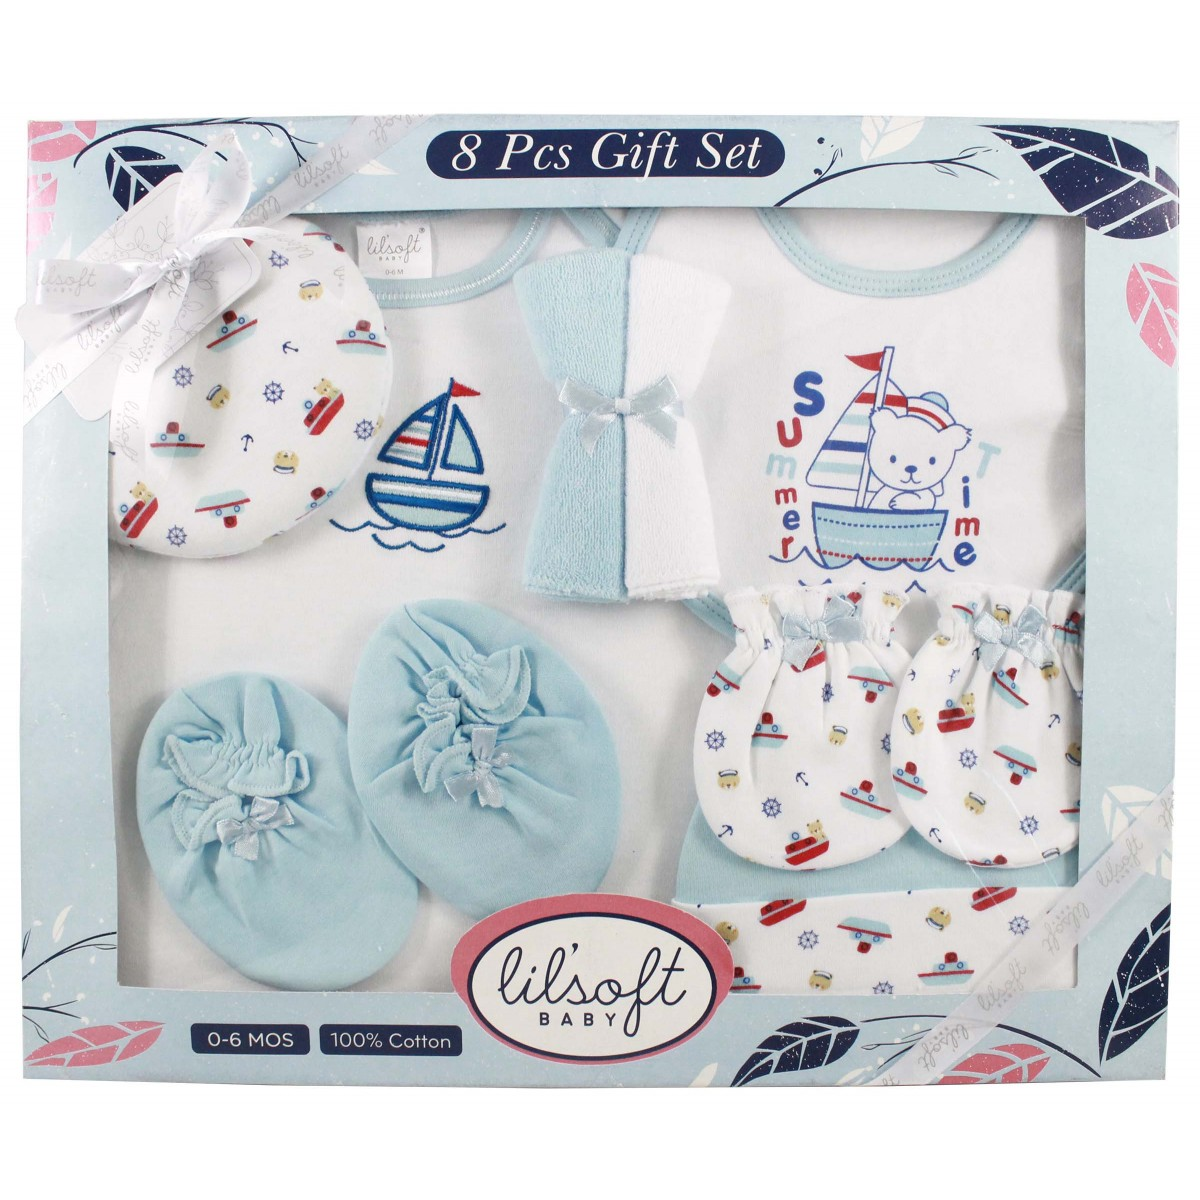 Previous  sc 1 st  Lilsoft Baby & 8 PCS GIFT SET for Gift Sets